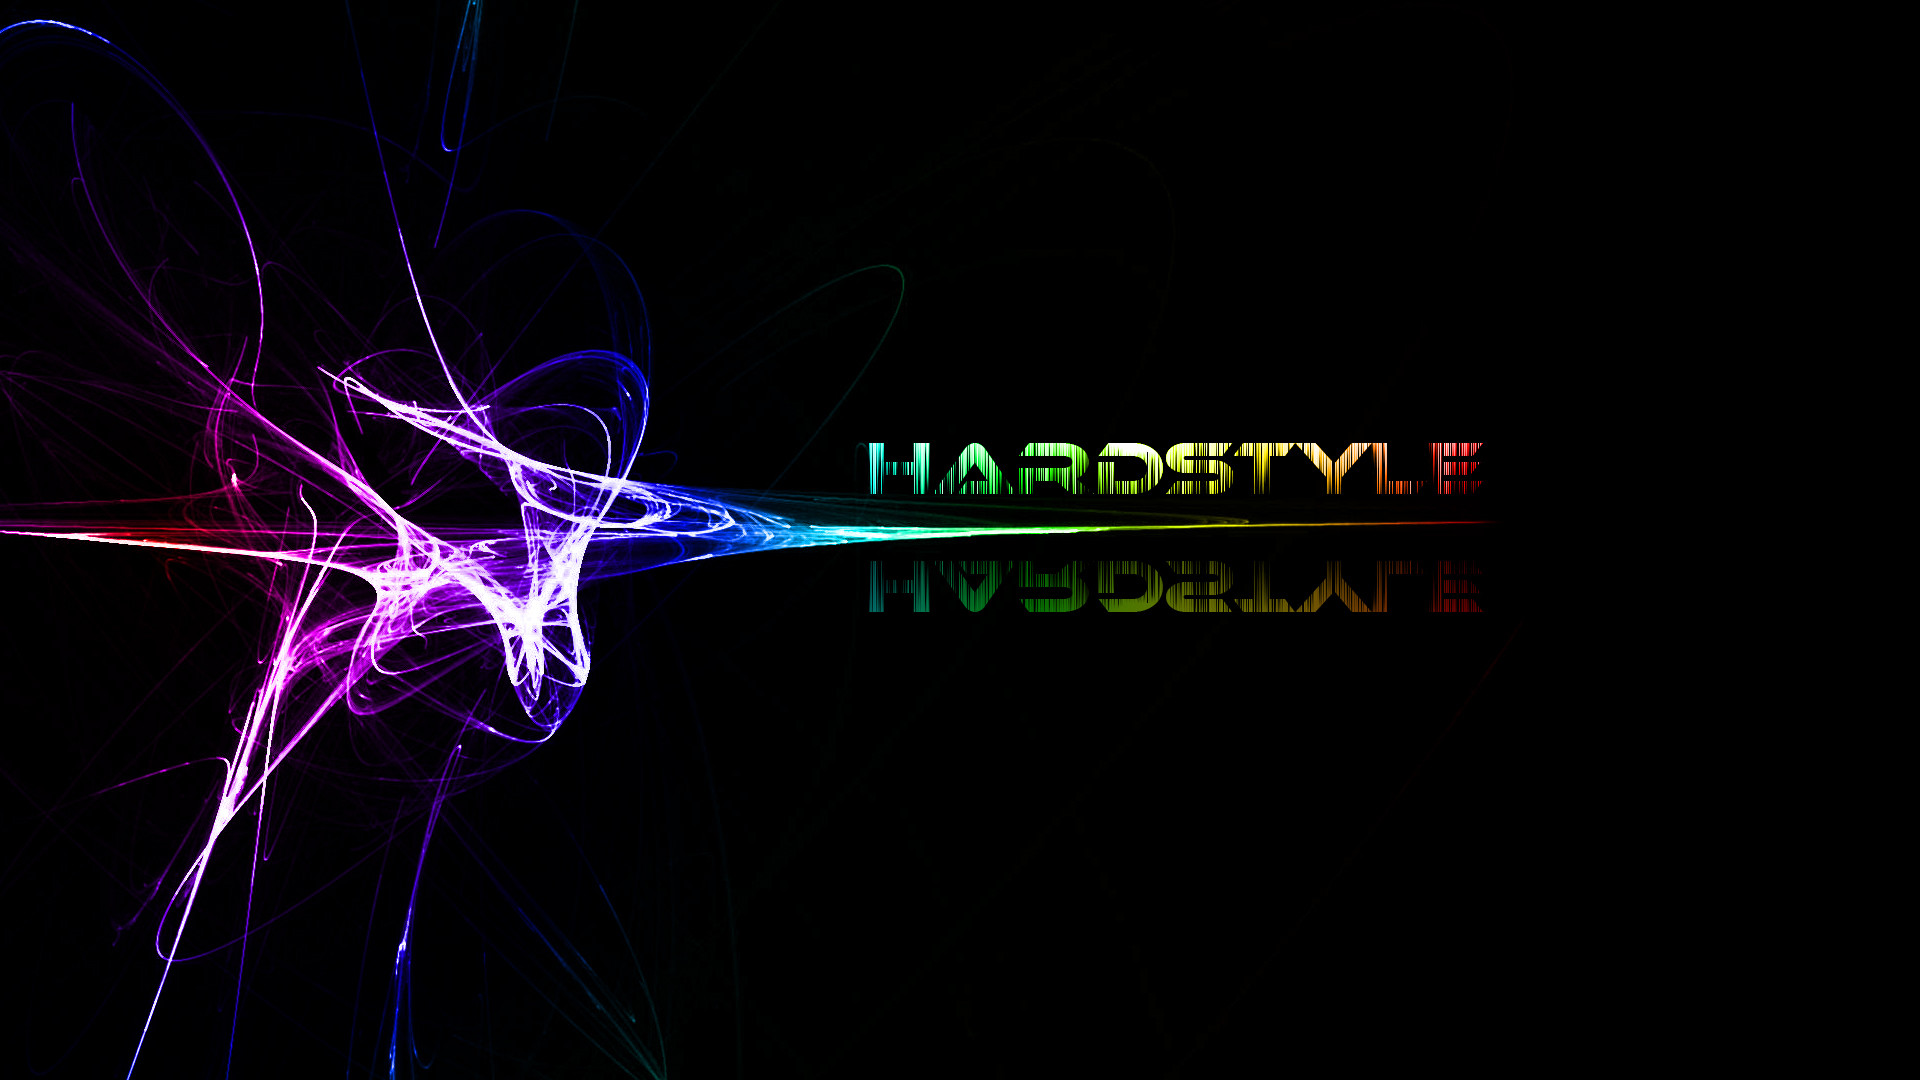 Res: 1920x1080, Hardstyle Wallpaper 8 by Hardii Hardstyle Wallpaper 8 by Hardii